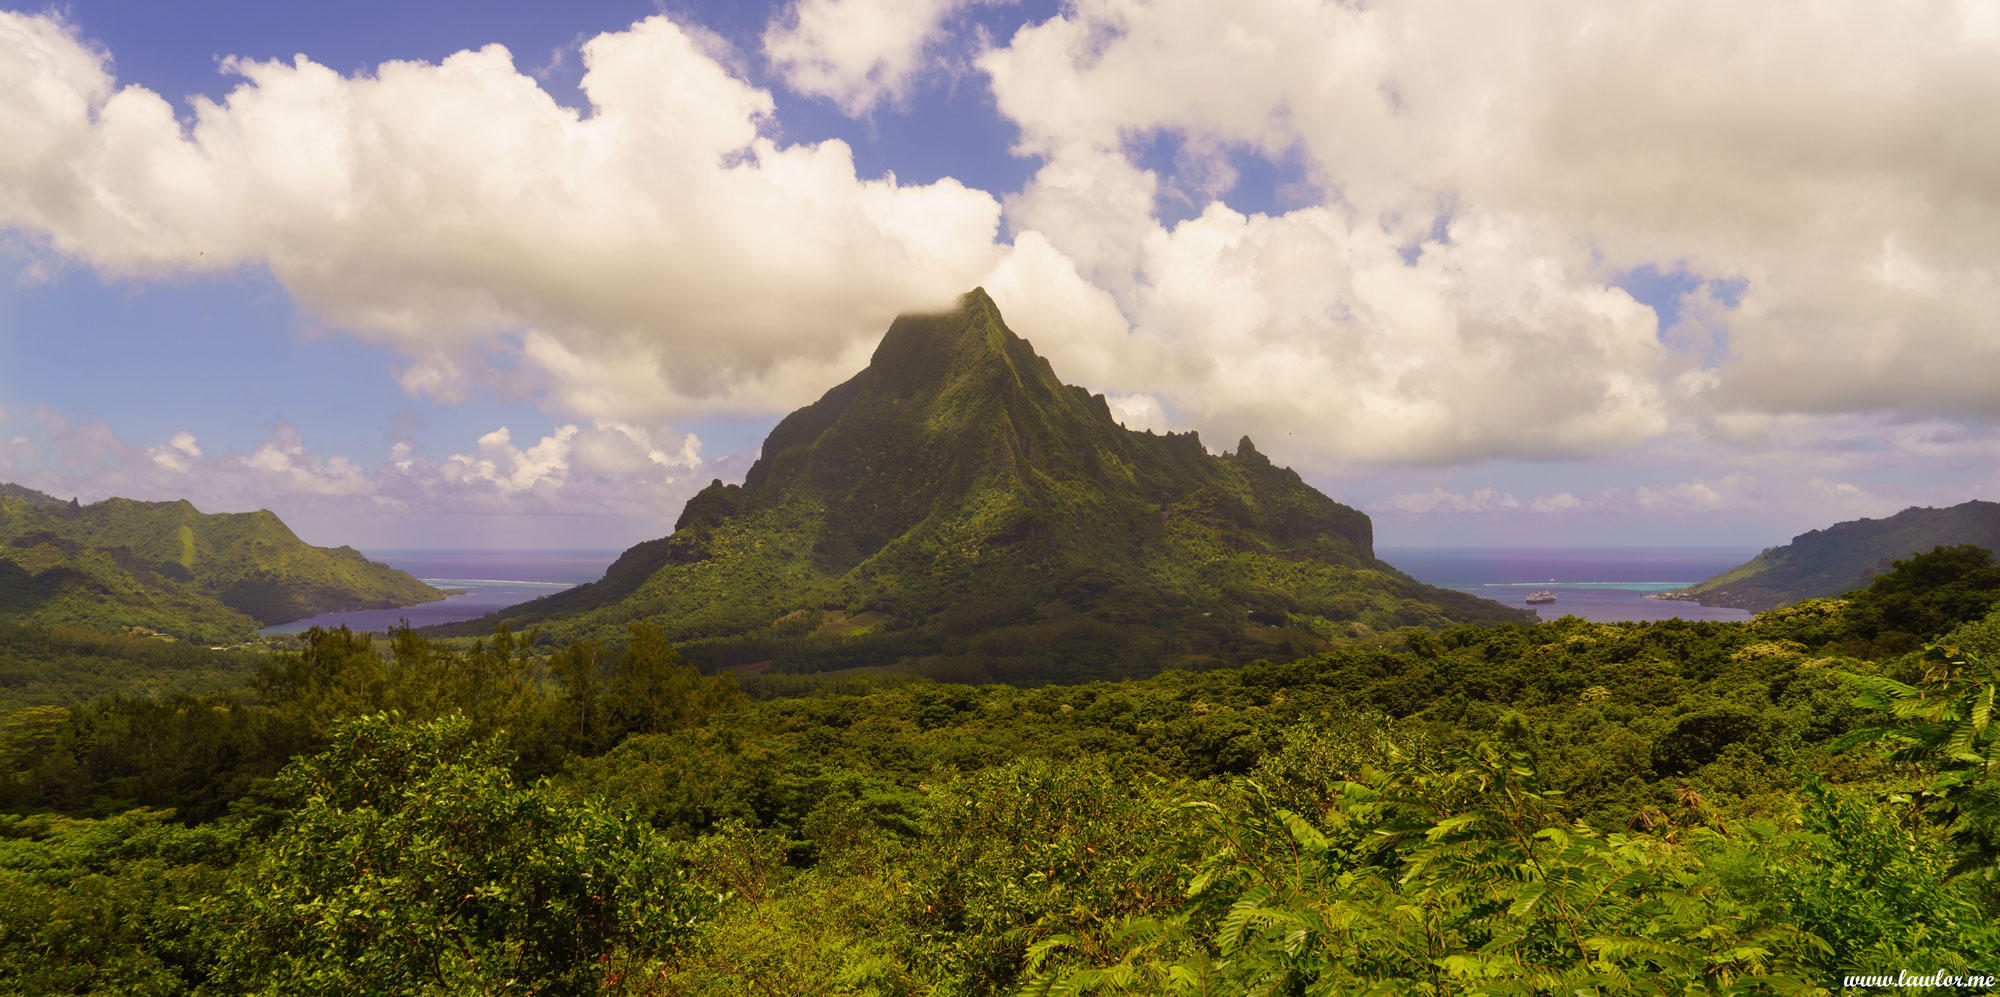 Mount Roto Nui from Belvedere, Moorea - French Polynesia, Free Landscape Photography, free landscape photos, free nature images, free HD images, free high definition stock images, free stock images download, desktop background, desktop wallpapers, free screensaver, landscape photography